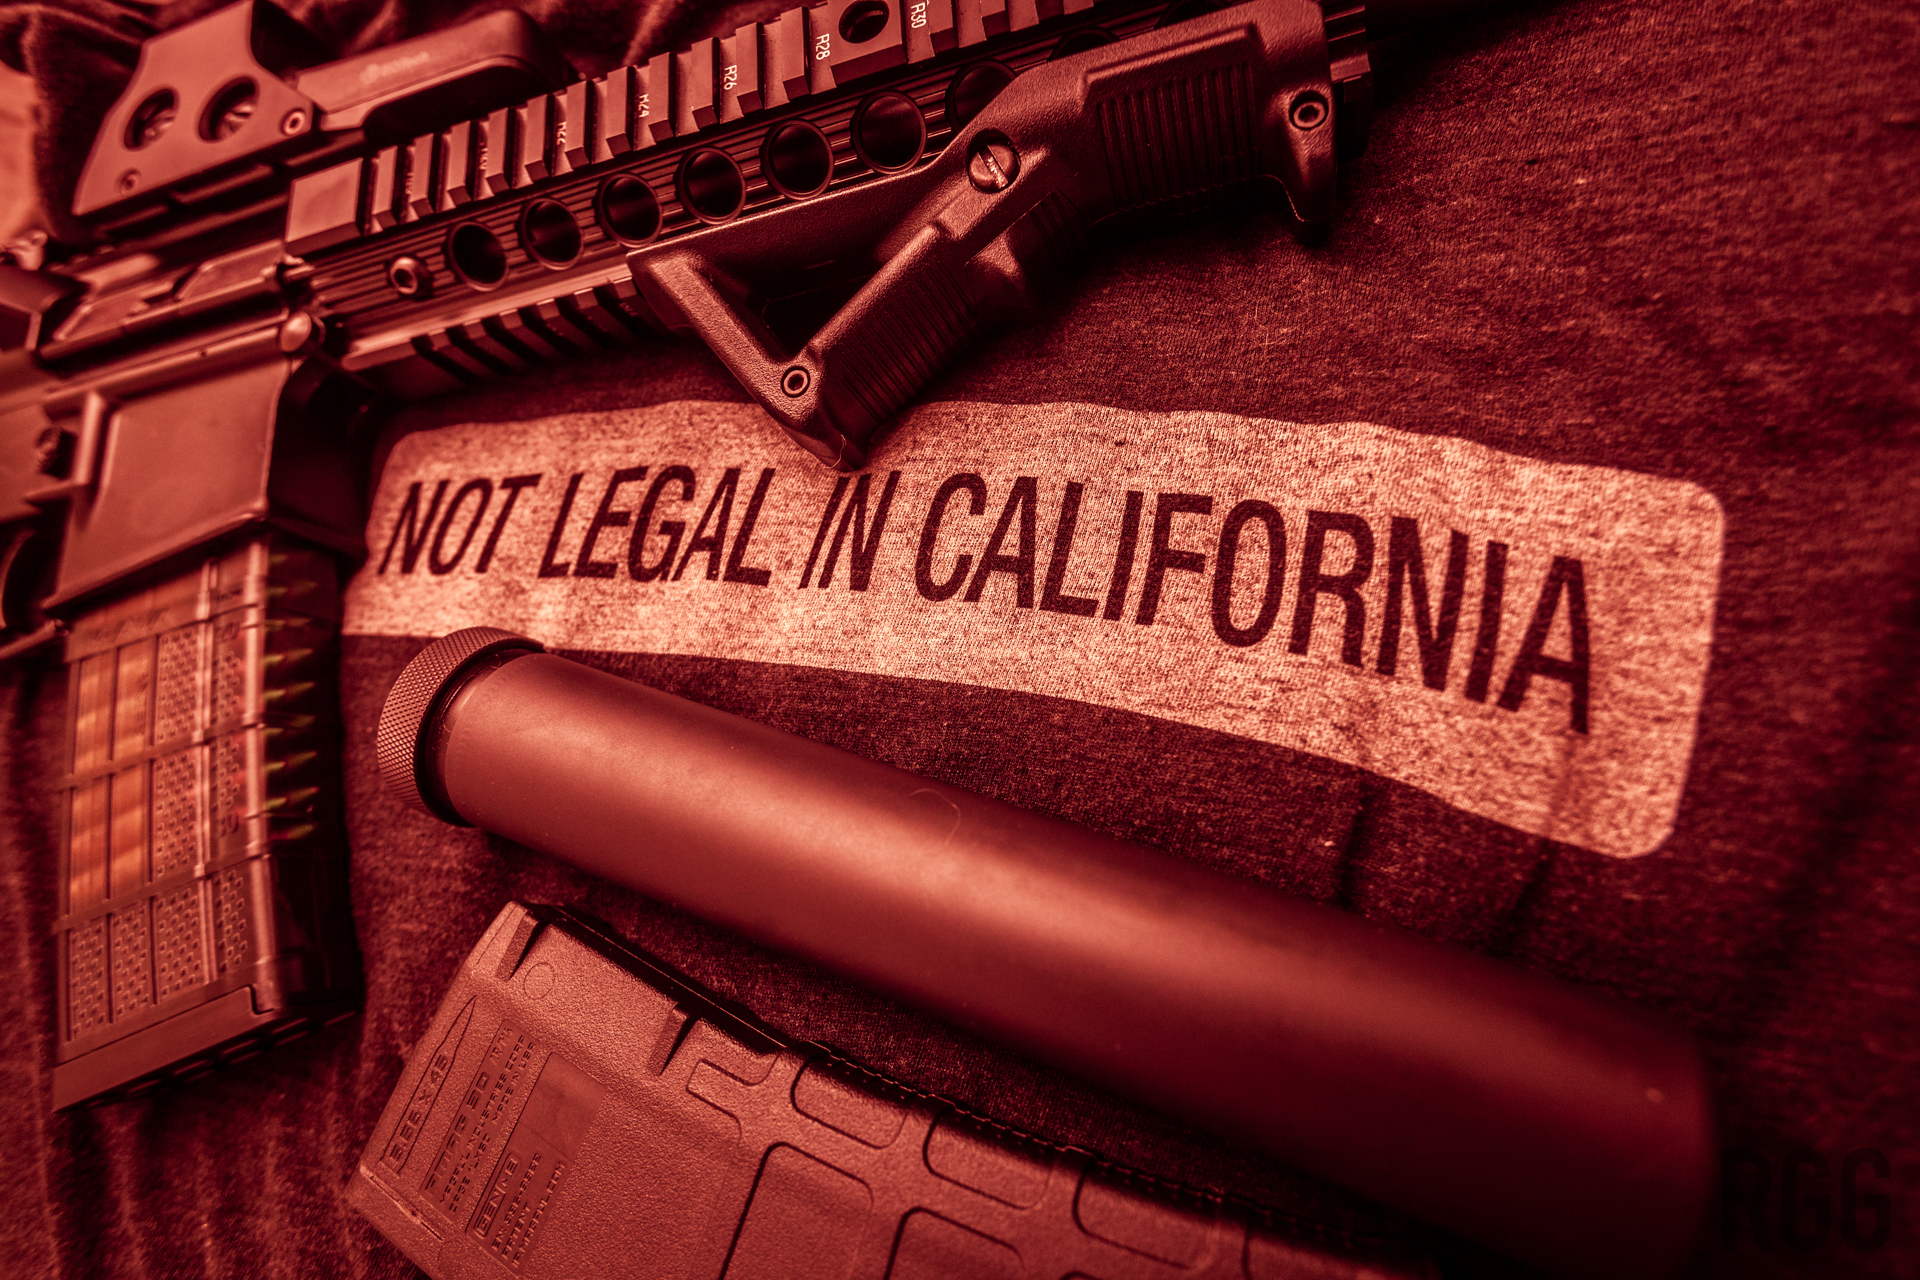 California has gone full retard with it's gun laws.